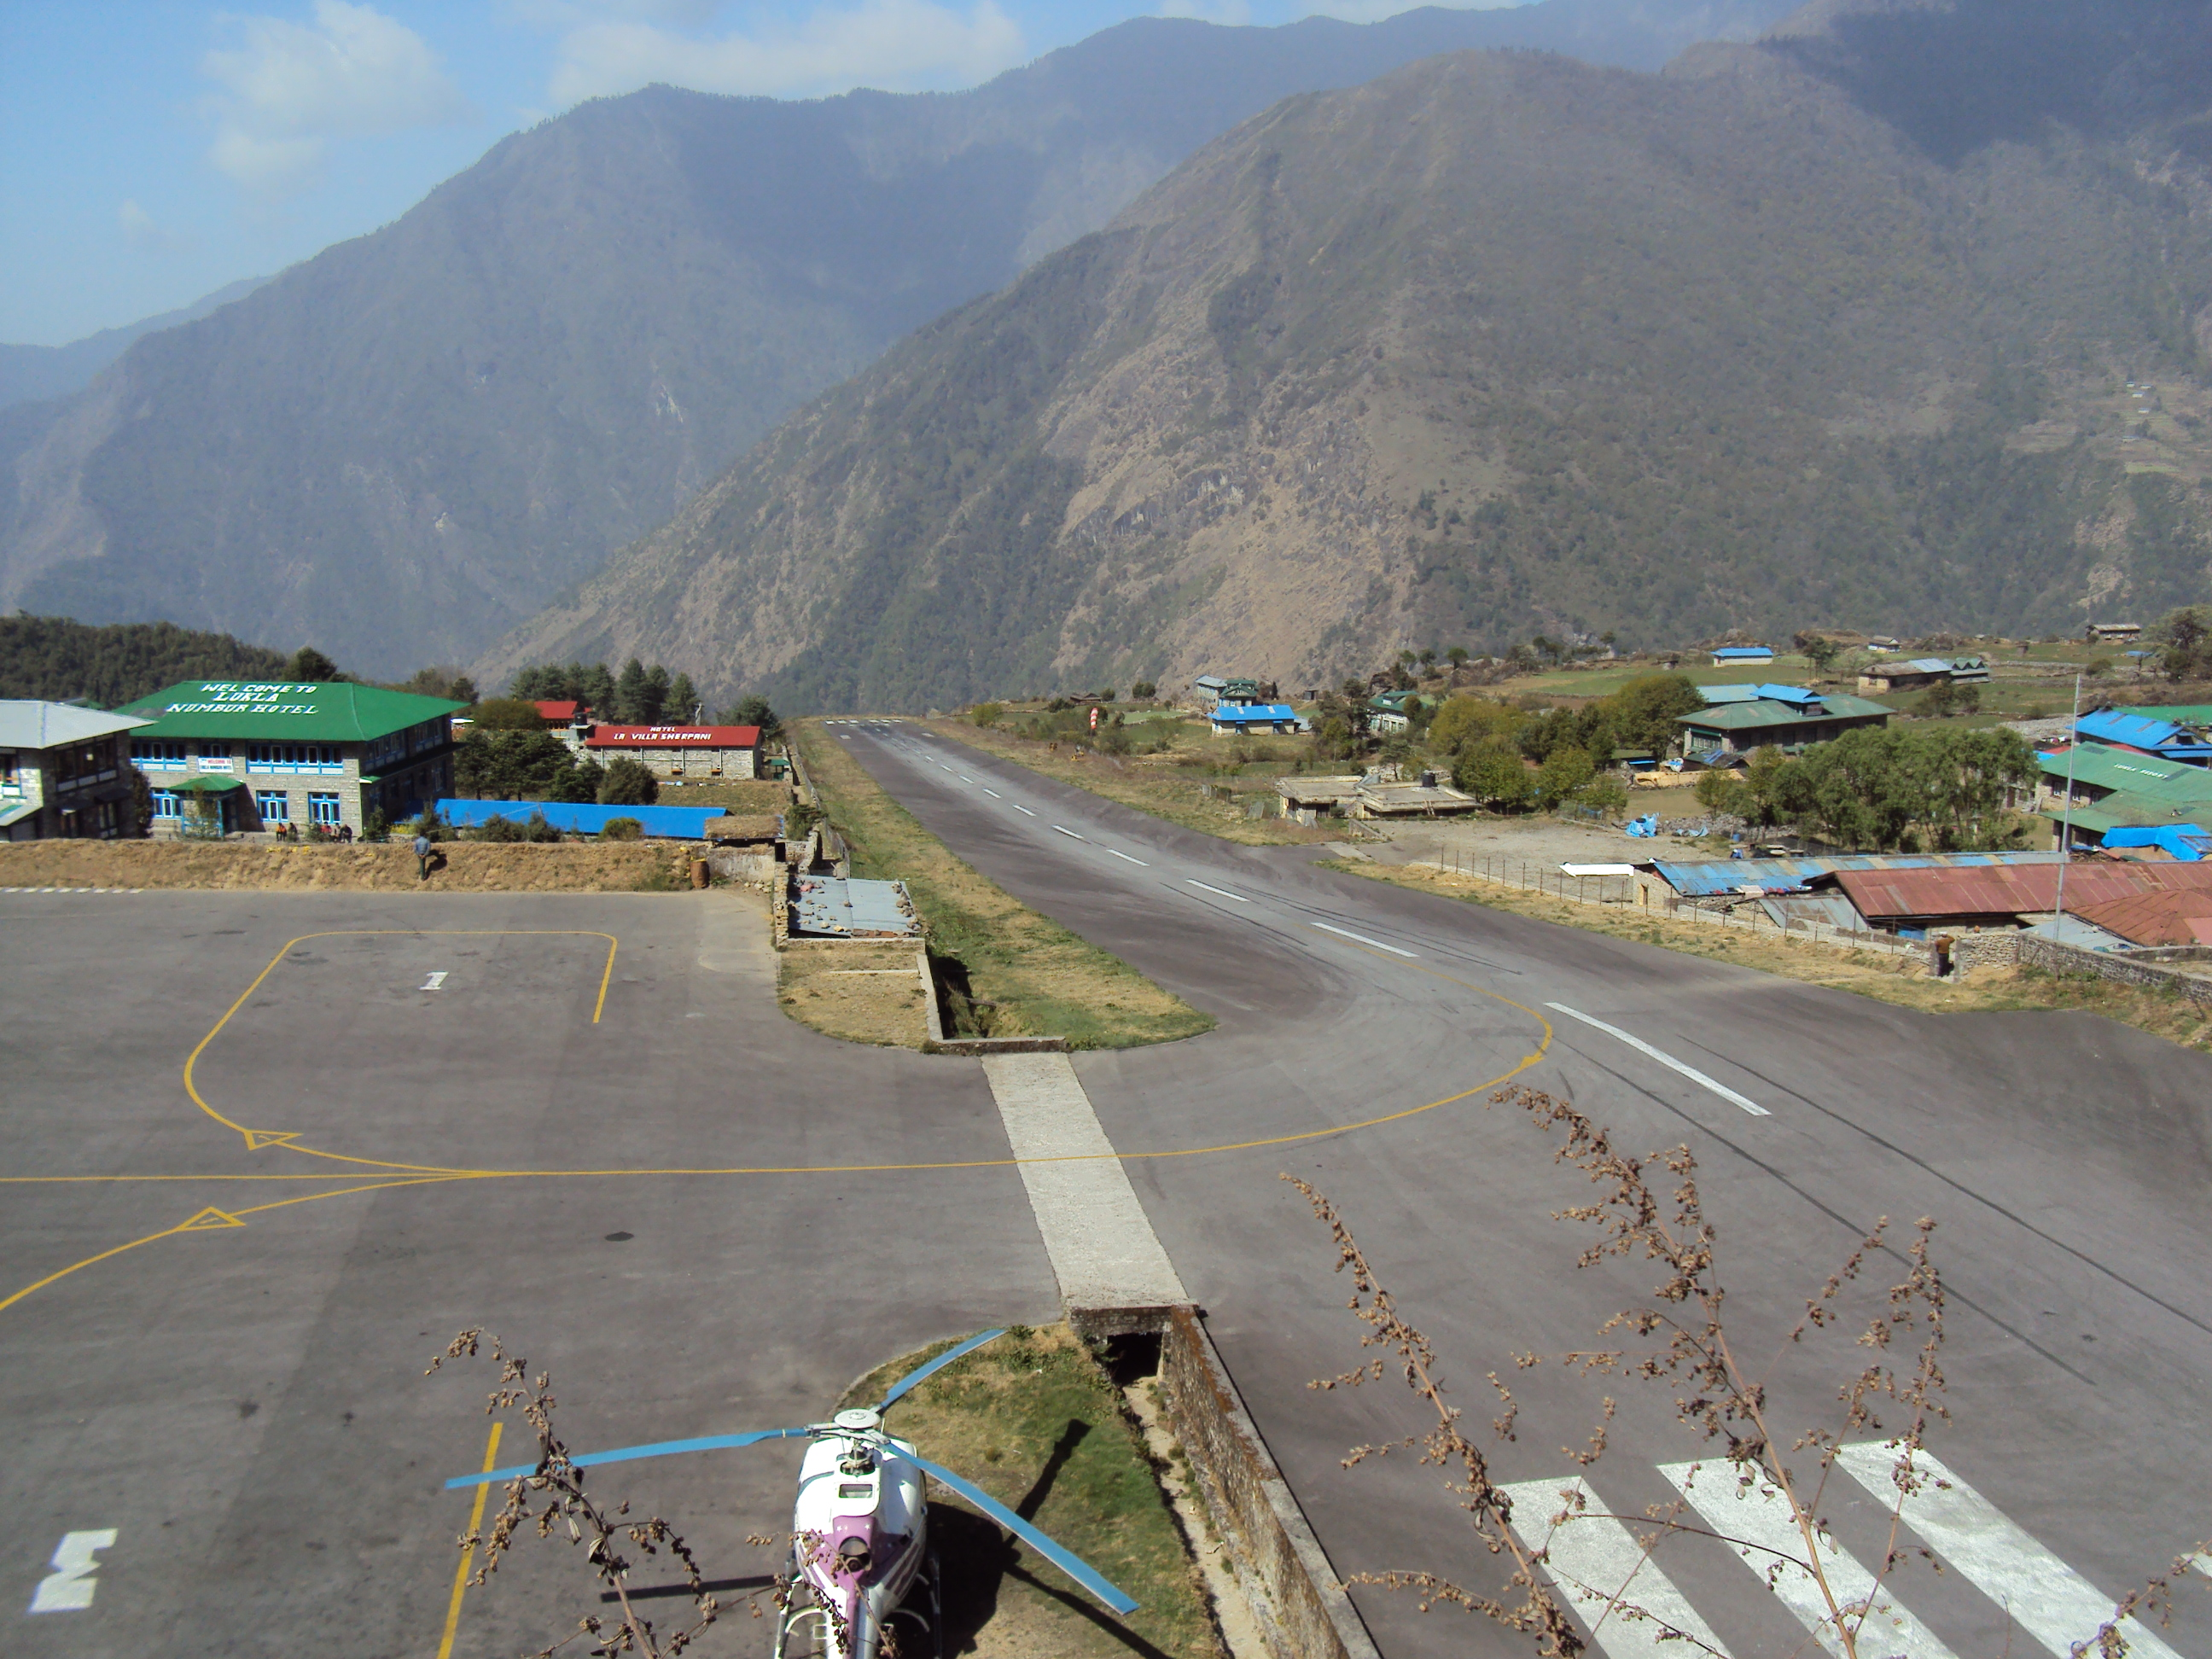 Tenzing-Hillary Airport (IATA: LUA), also known as Lukla Airport in Nepal